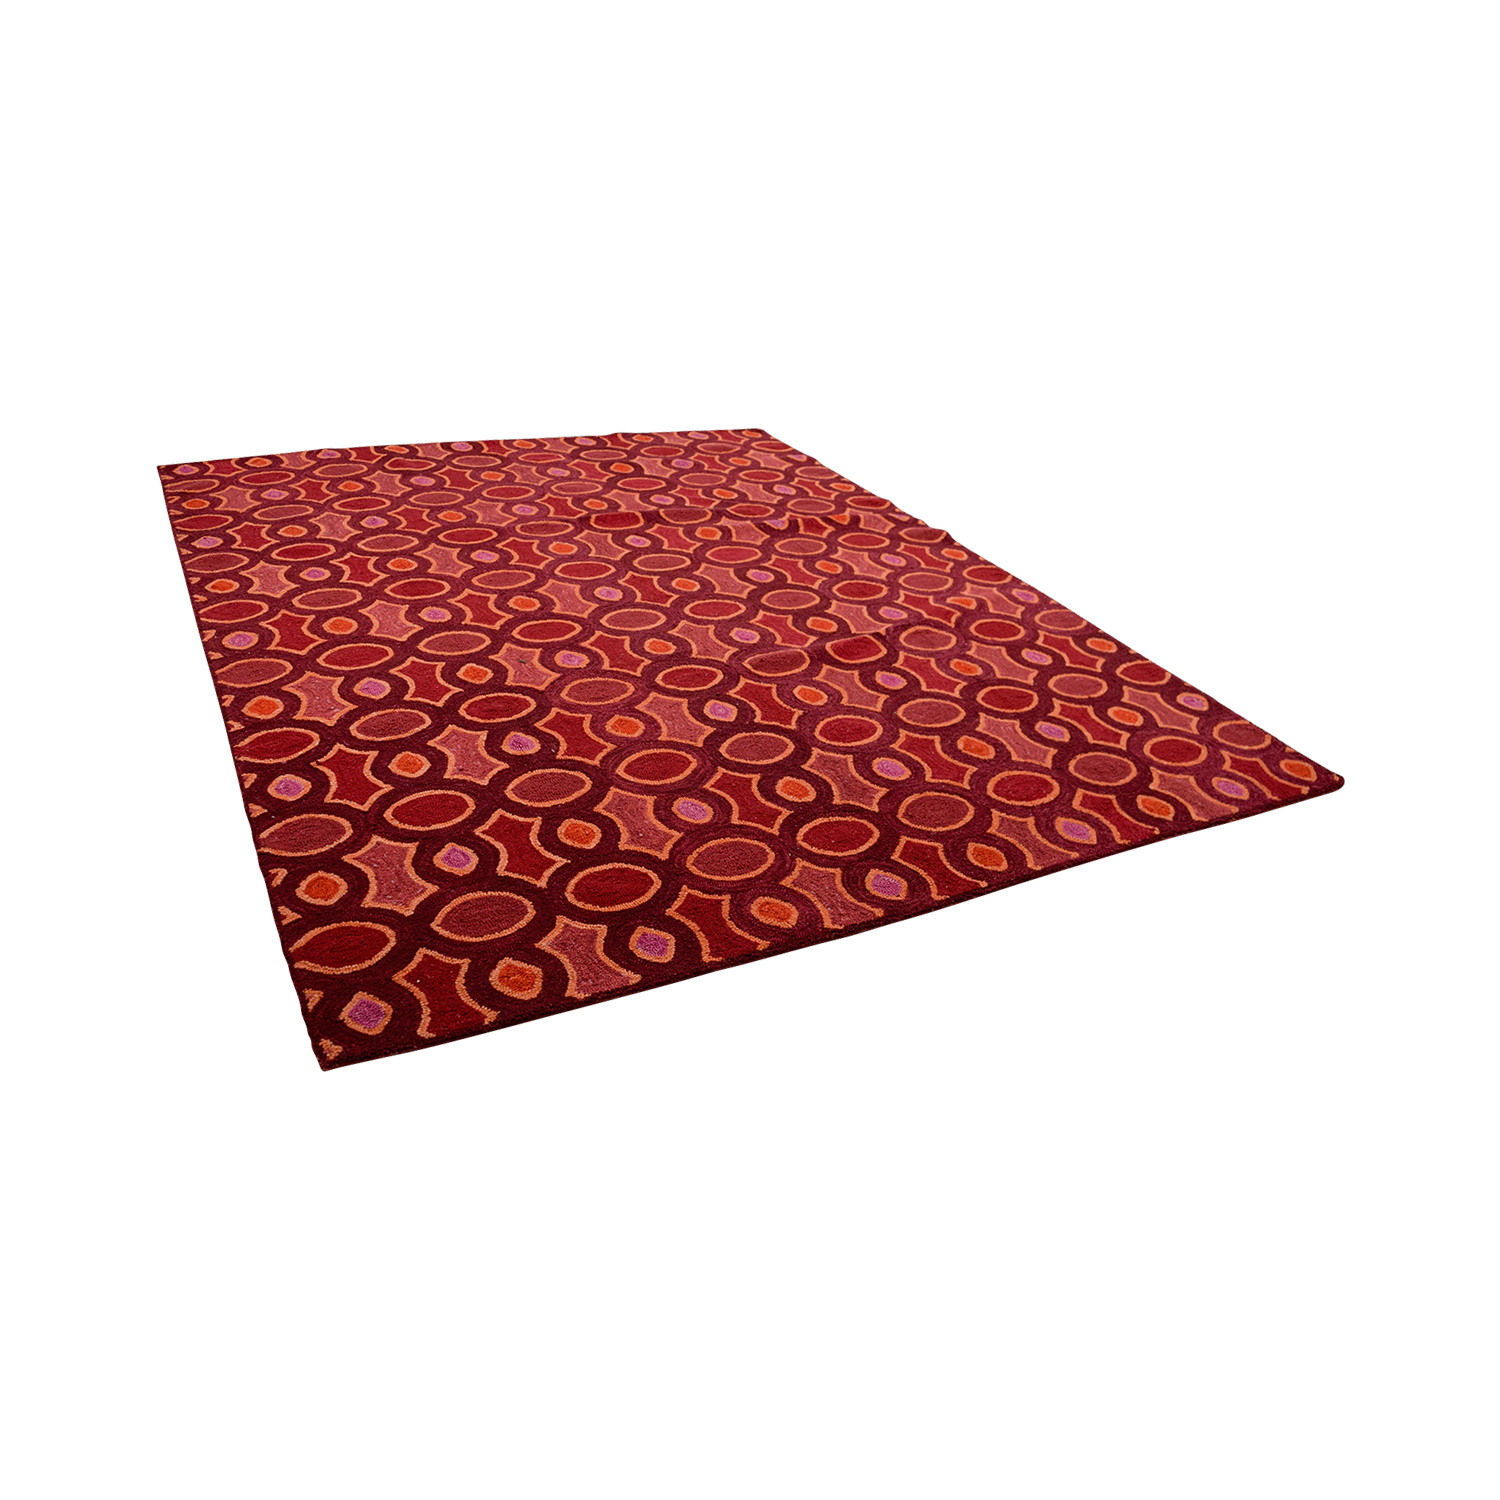 Obeetee Obeetee Hand Hooked Red Pink Orange Rug